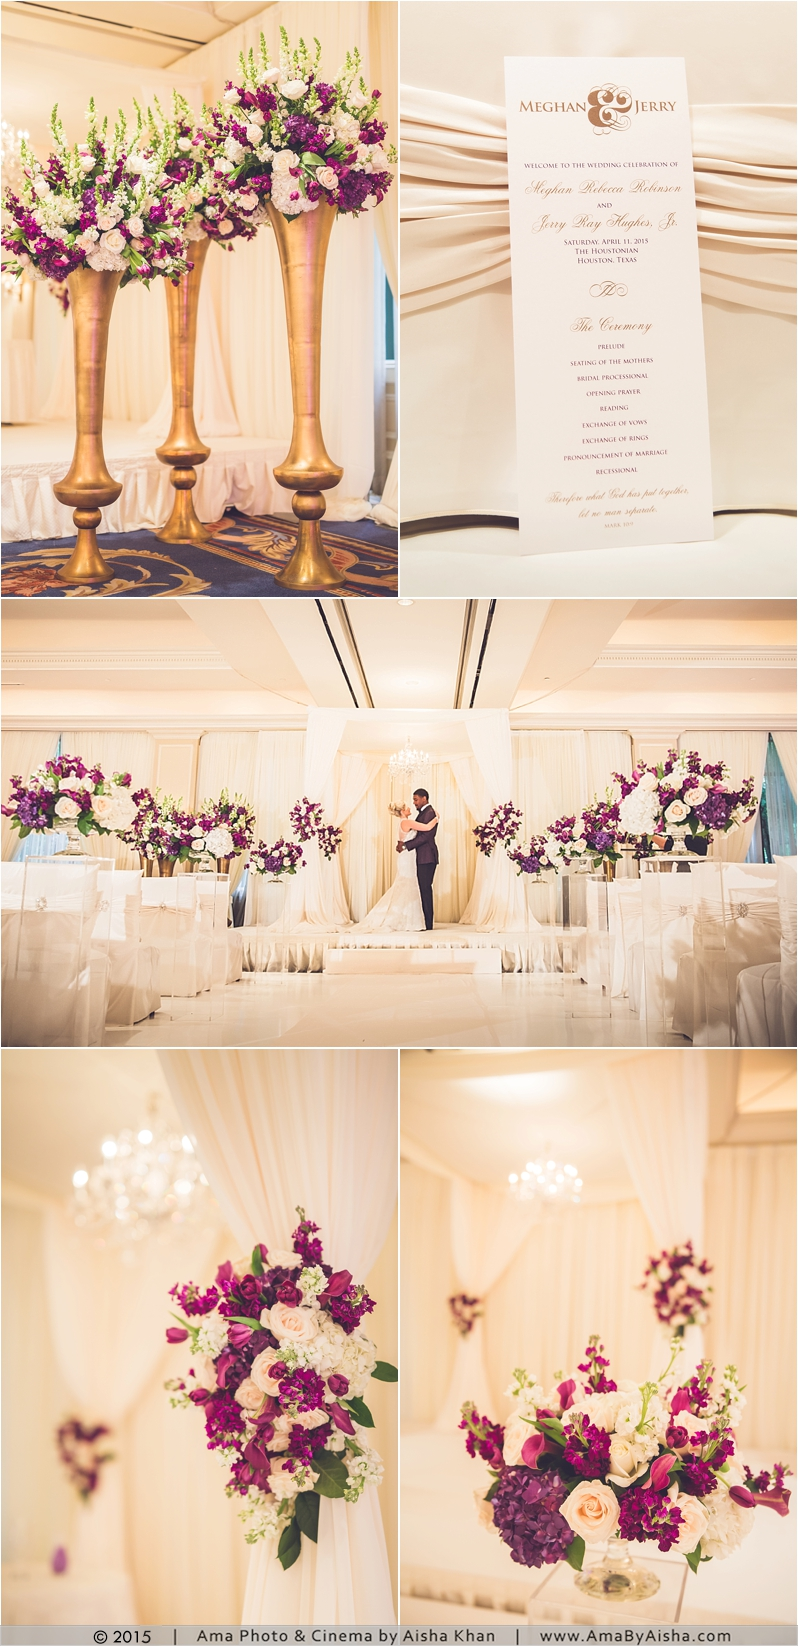 ©2015 | www.AmaByAisha.com | Wedding ceremony decor and flowers